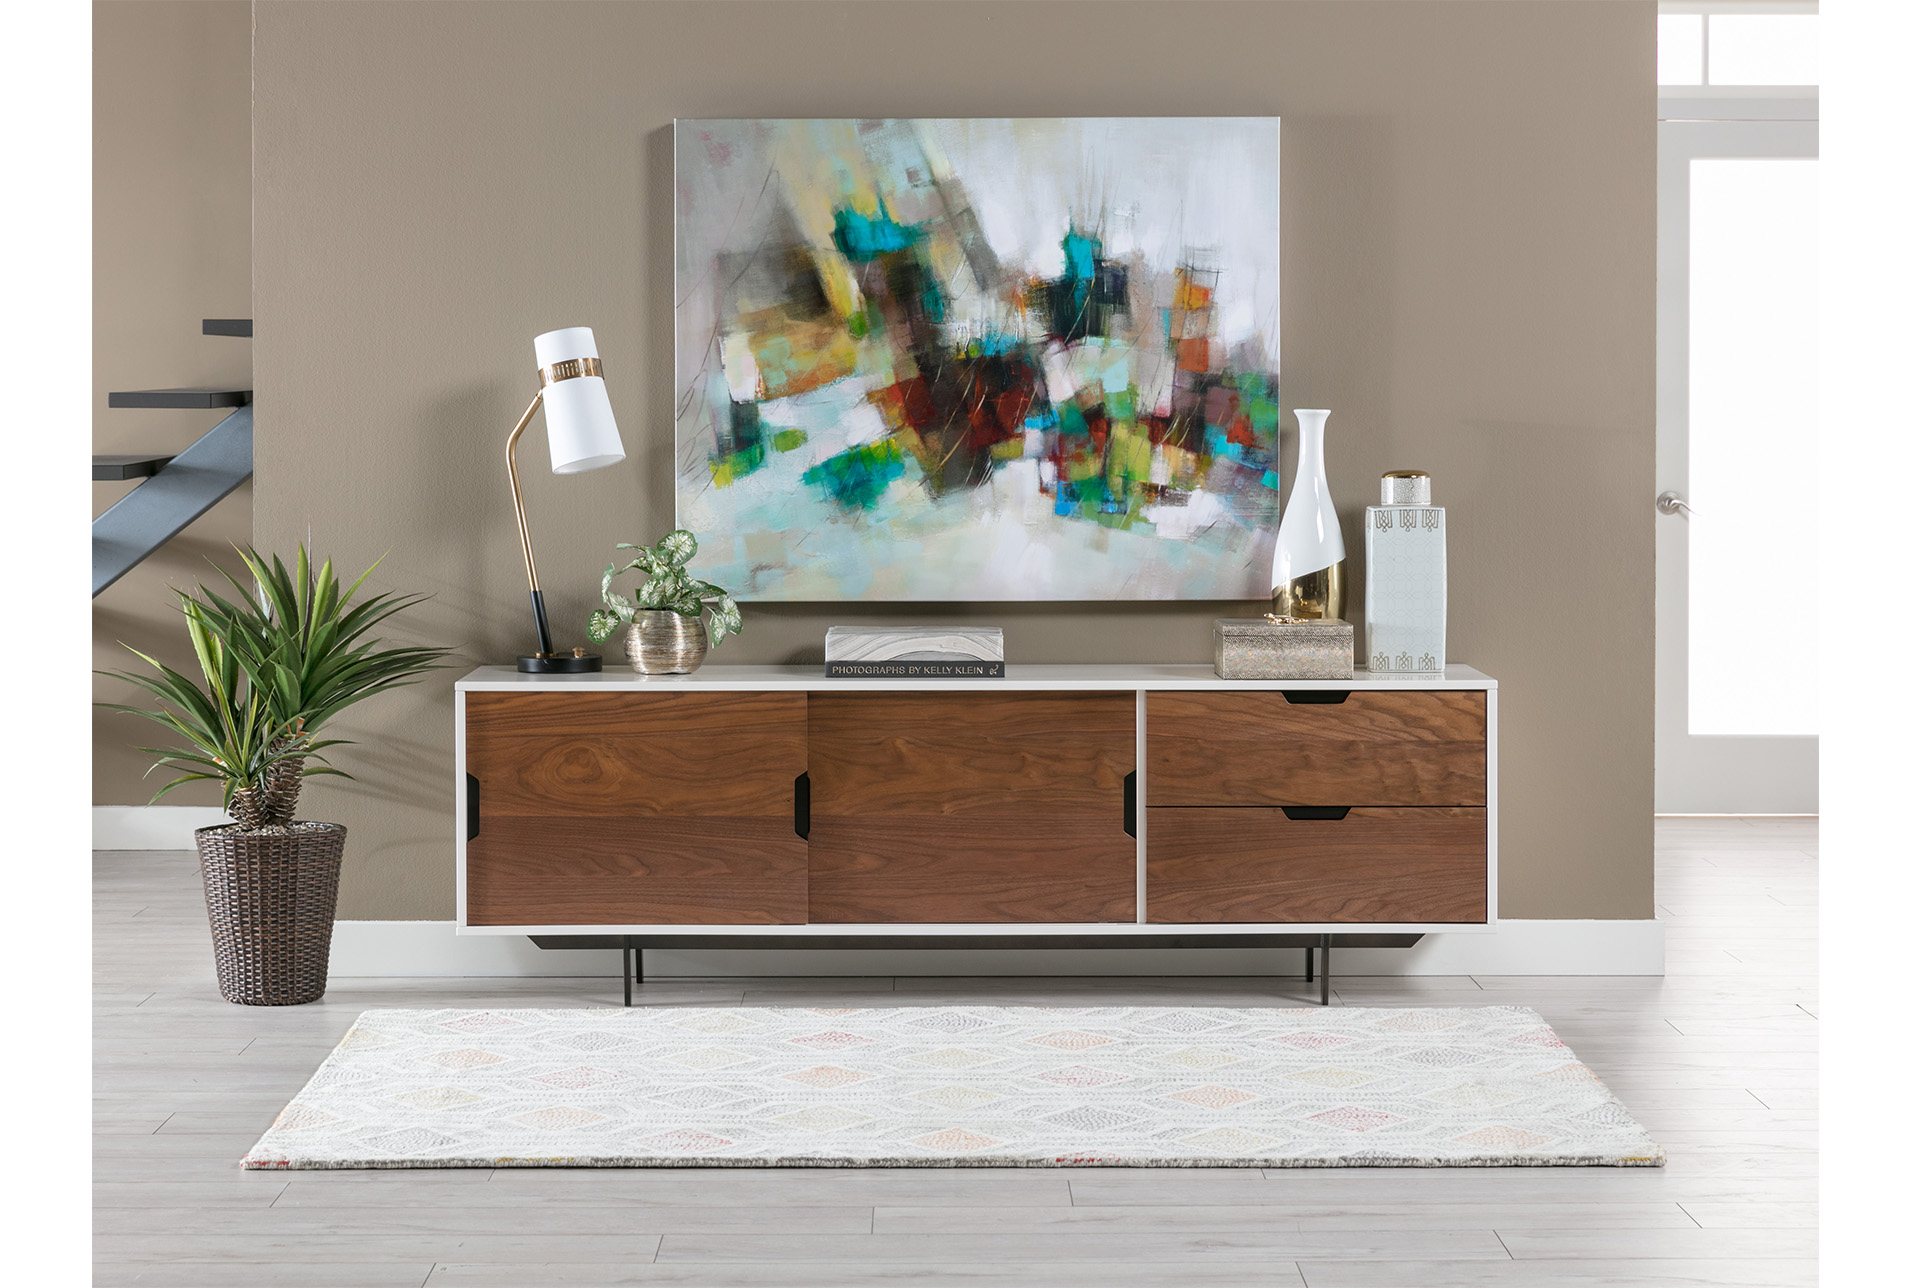 Bale 82 Inch Tv Stand   Products   Living Room, Room, Home Living Room For Bale 82 Inch Tv Stands (View 2 of 30)